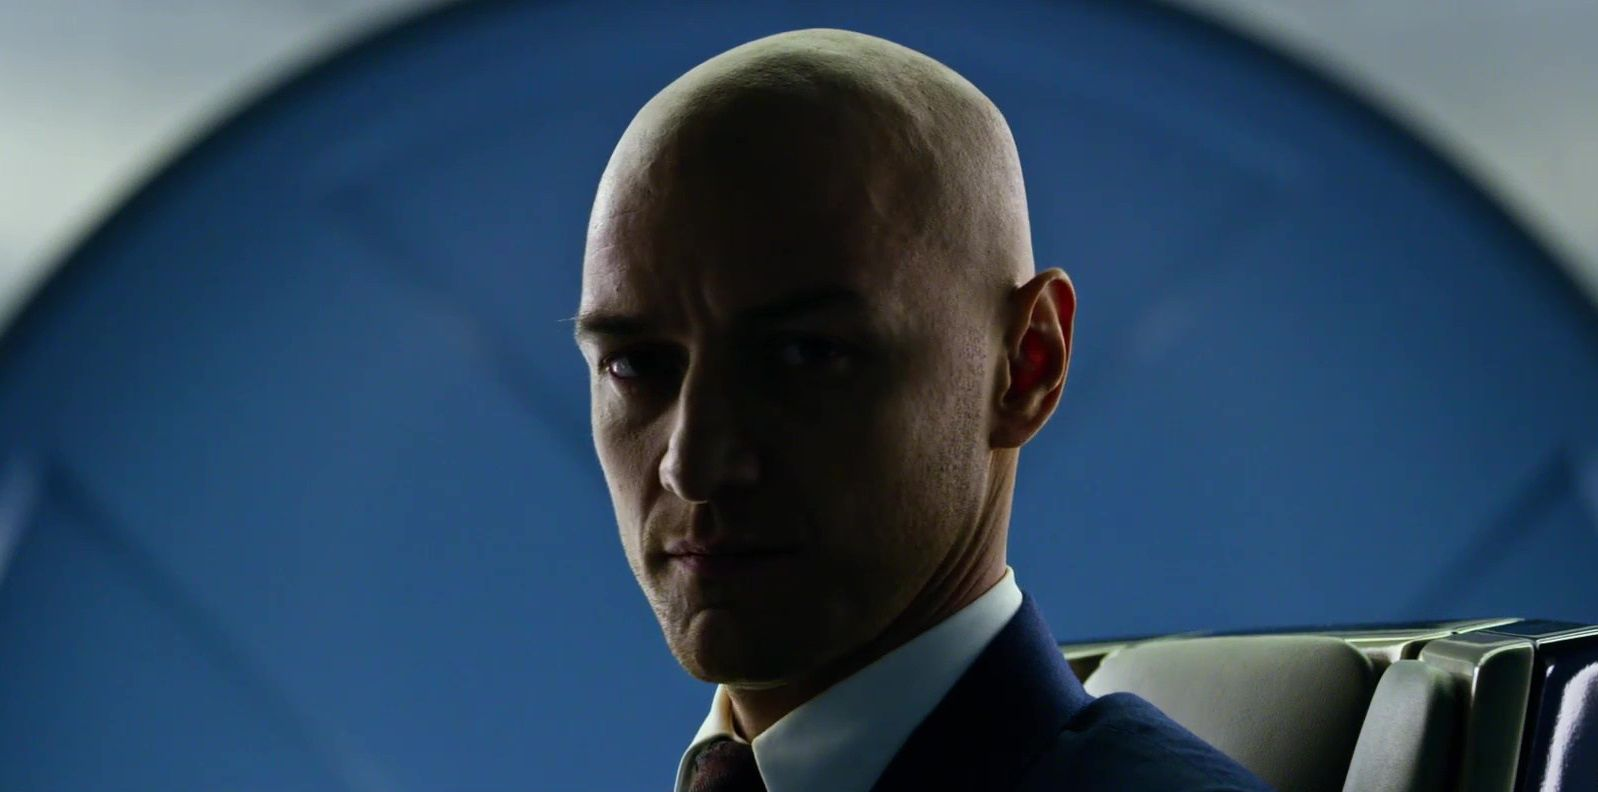 James McAvoy bald Xavier close-up